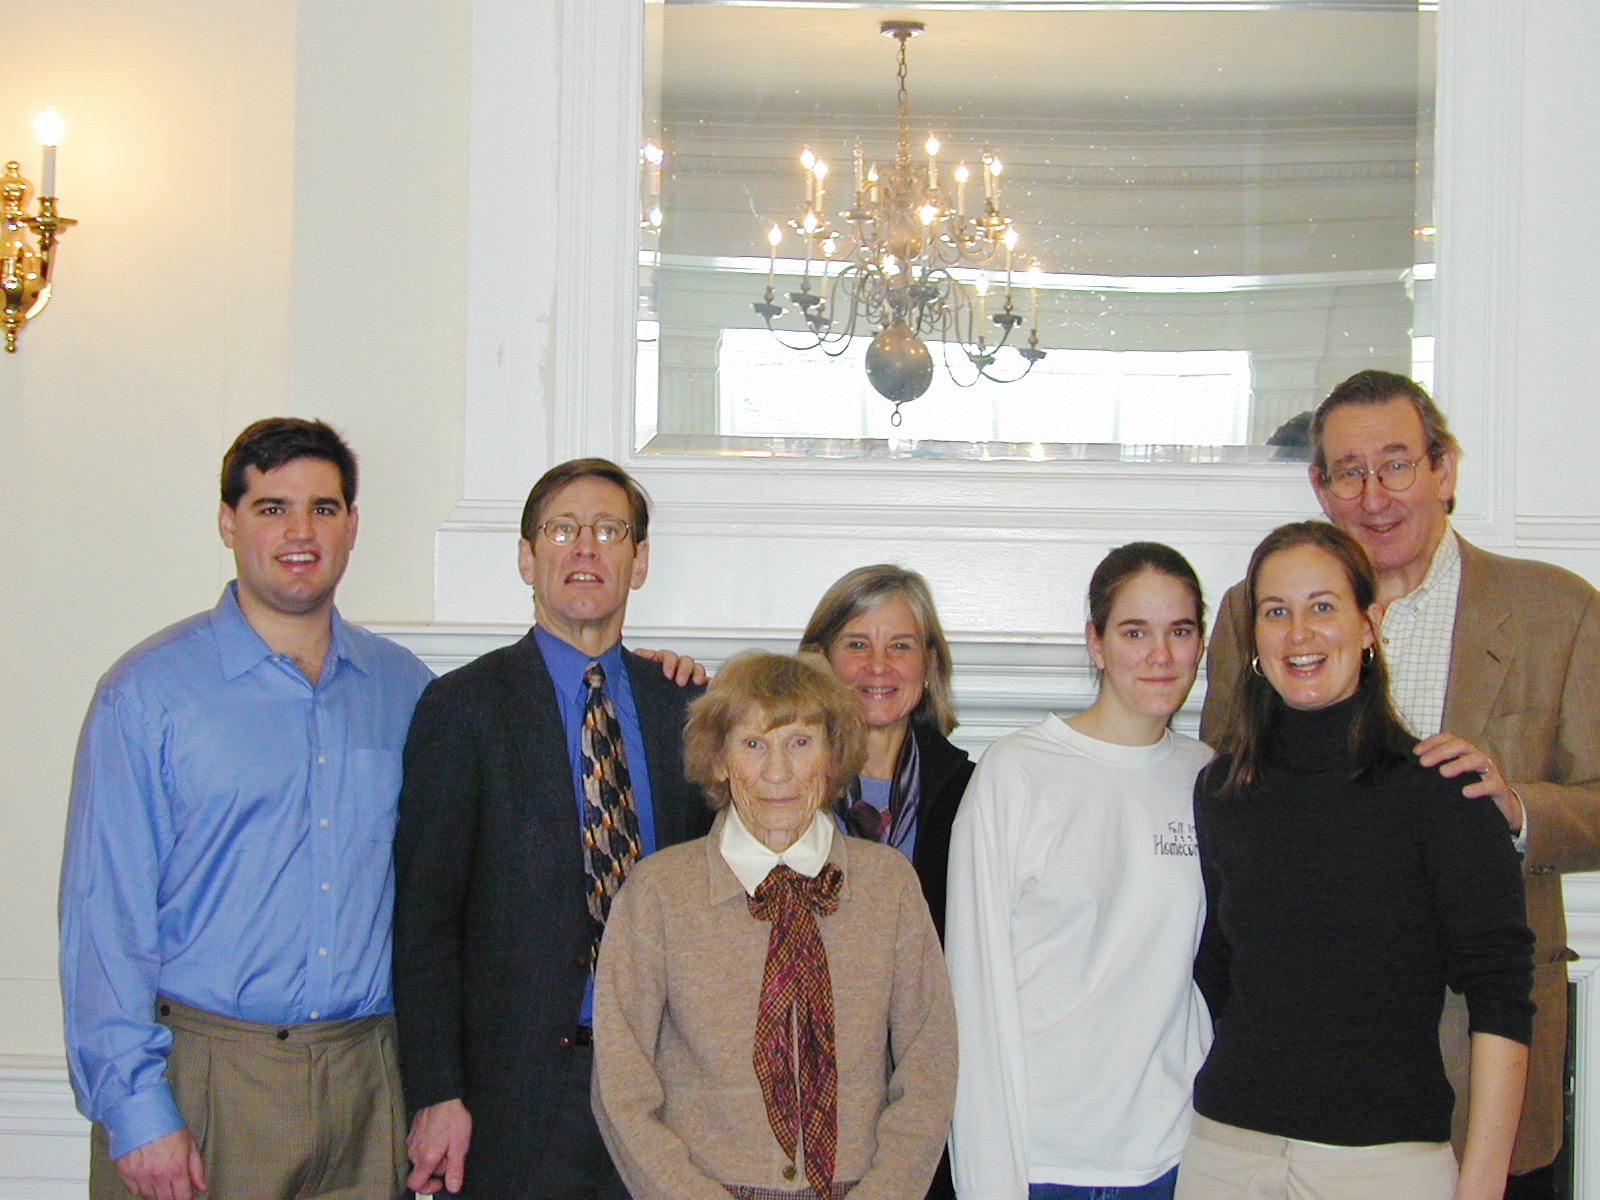 Norma's 90th, 2003